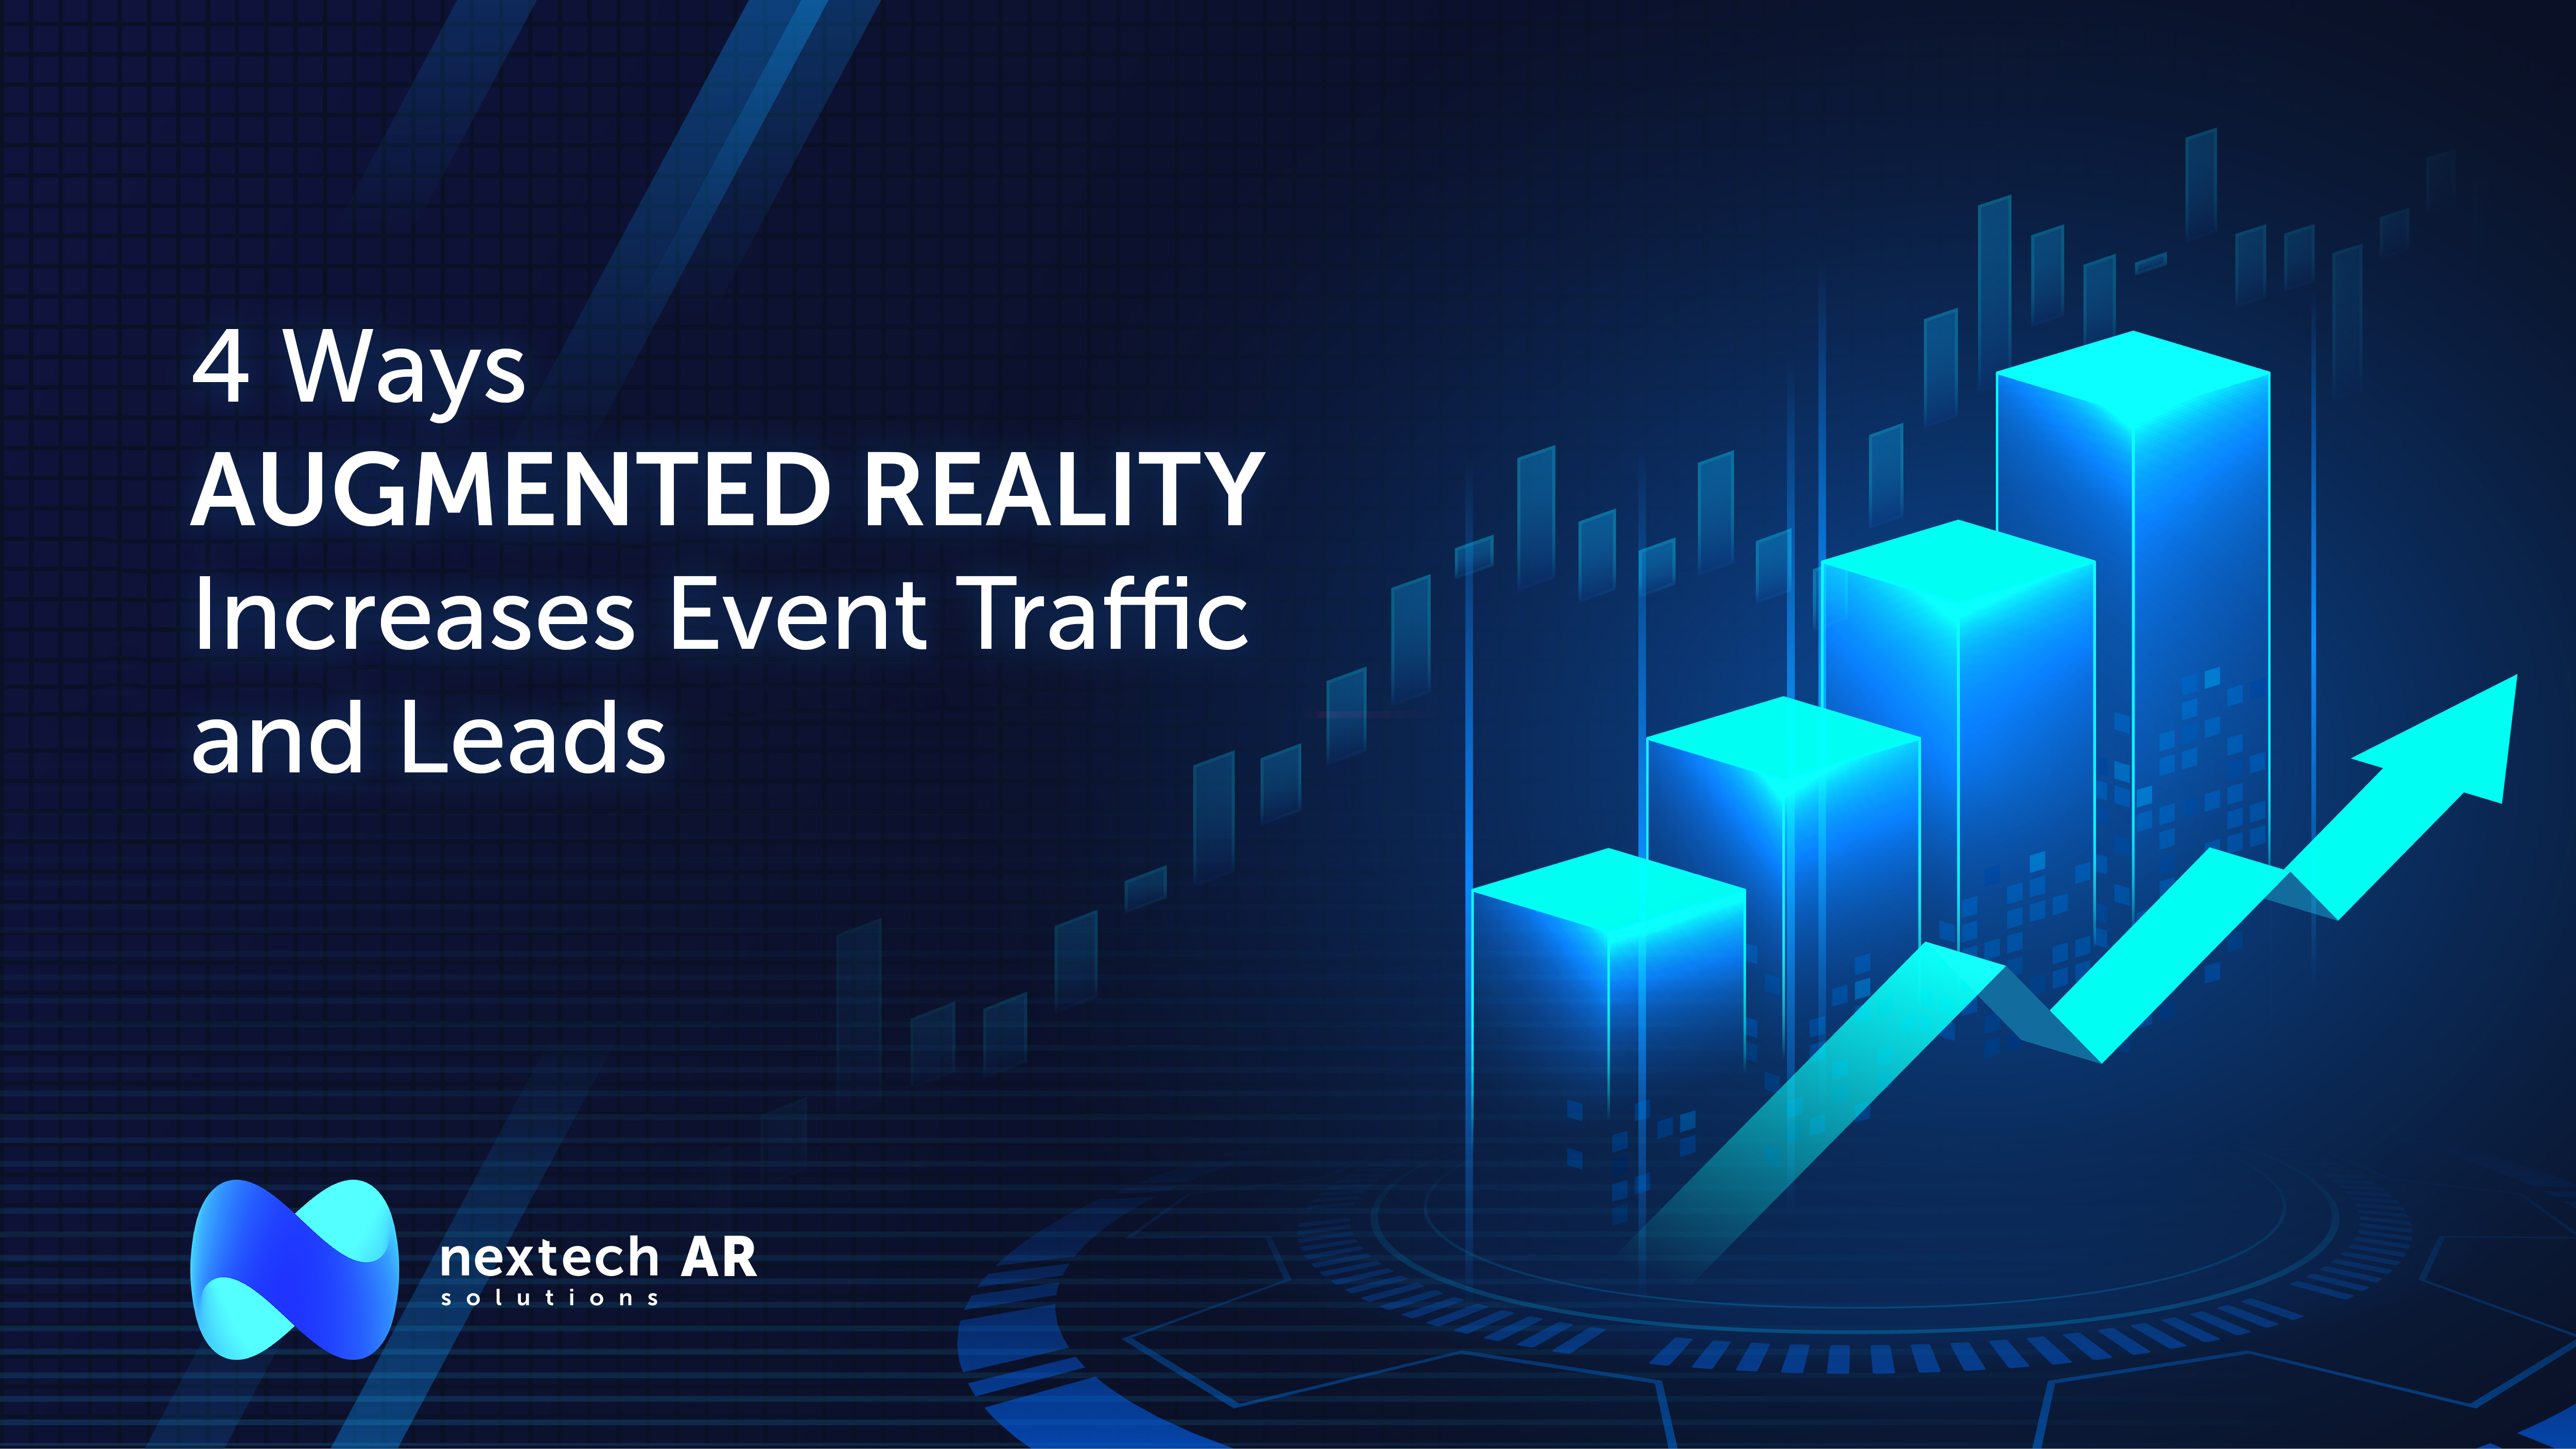 4 Ways Augmented Reality increases event traffic and leads